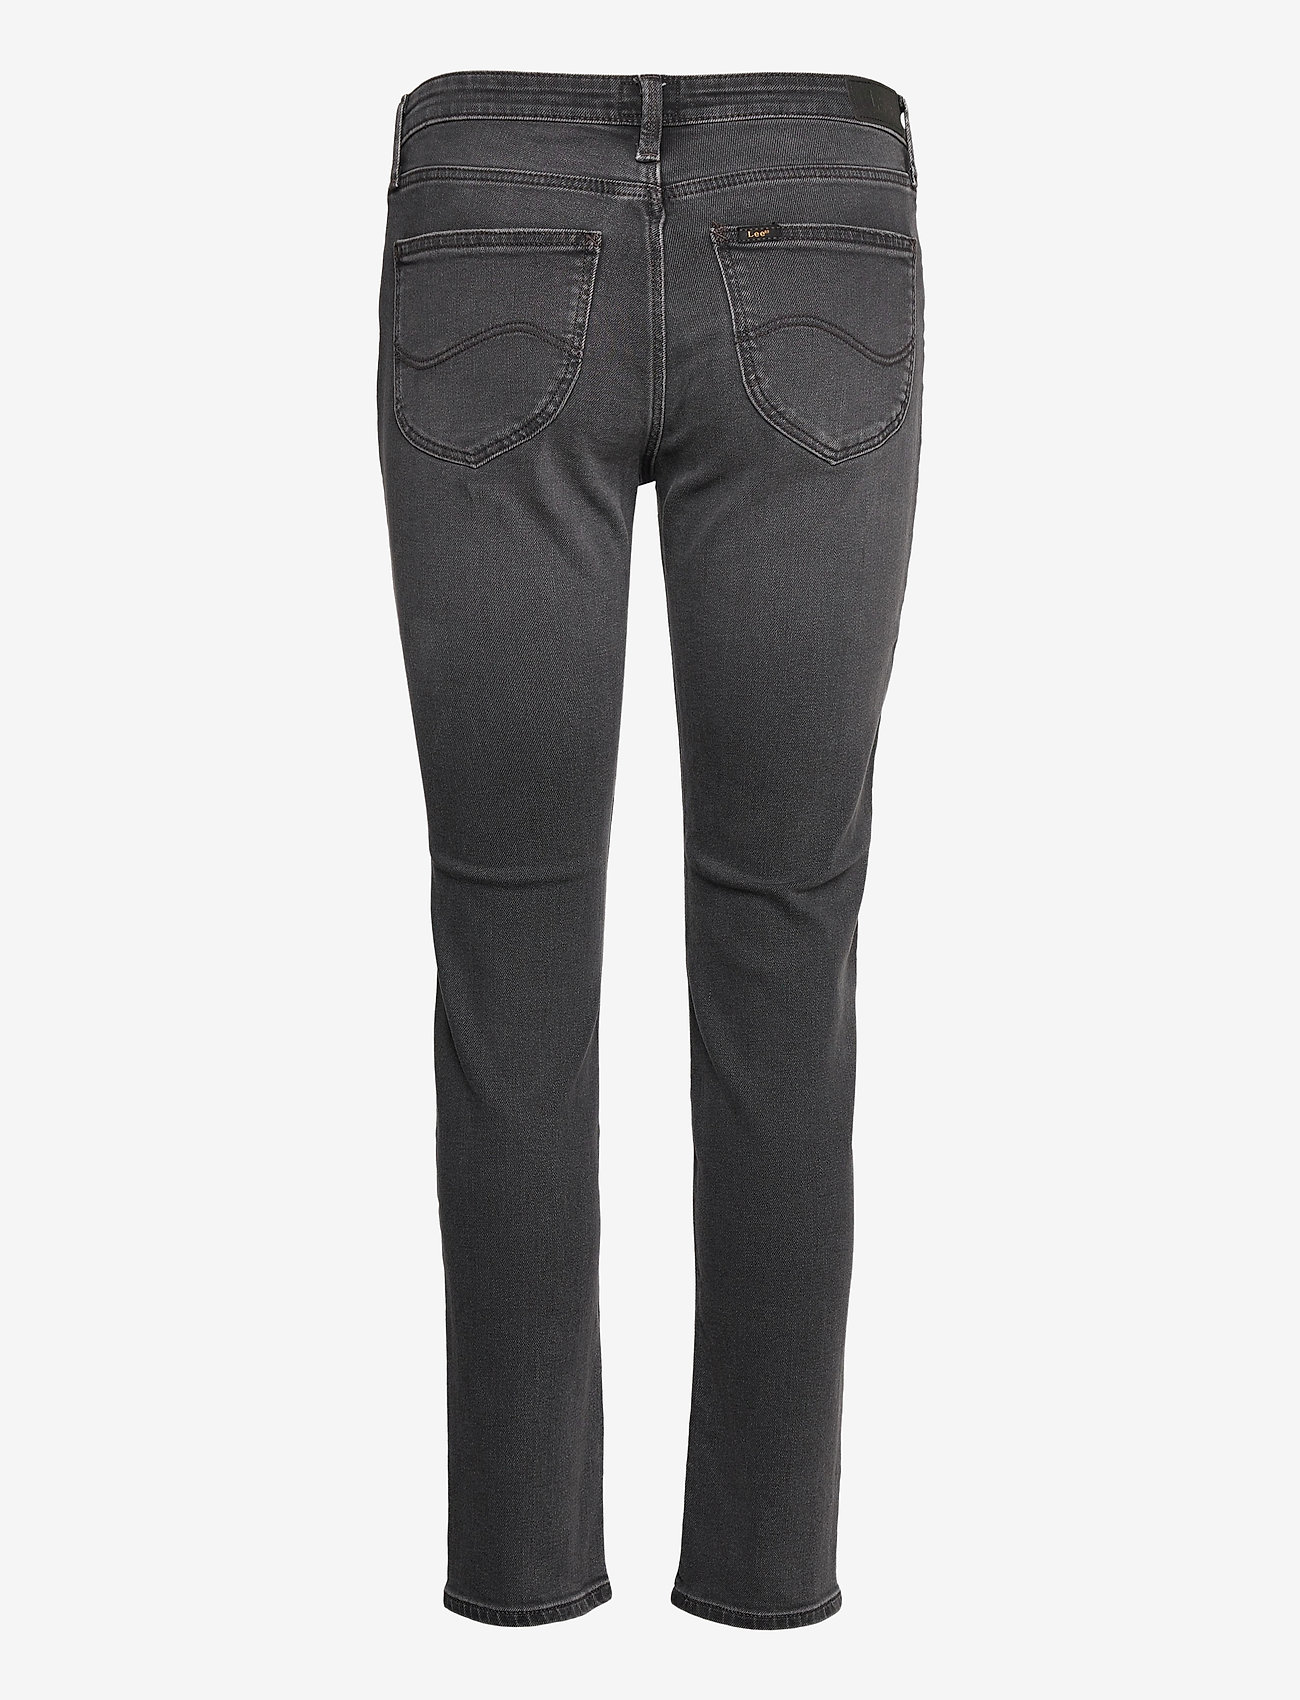 Lee Jeans - ELLY - slim jeans - black flow - 1